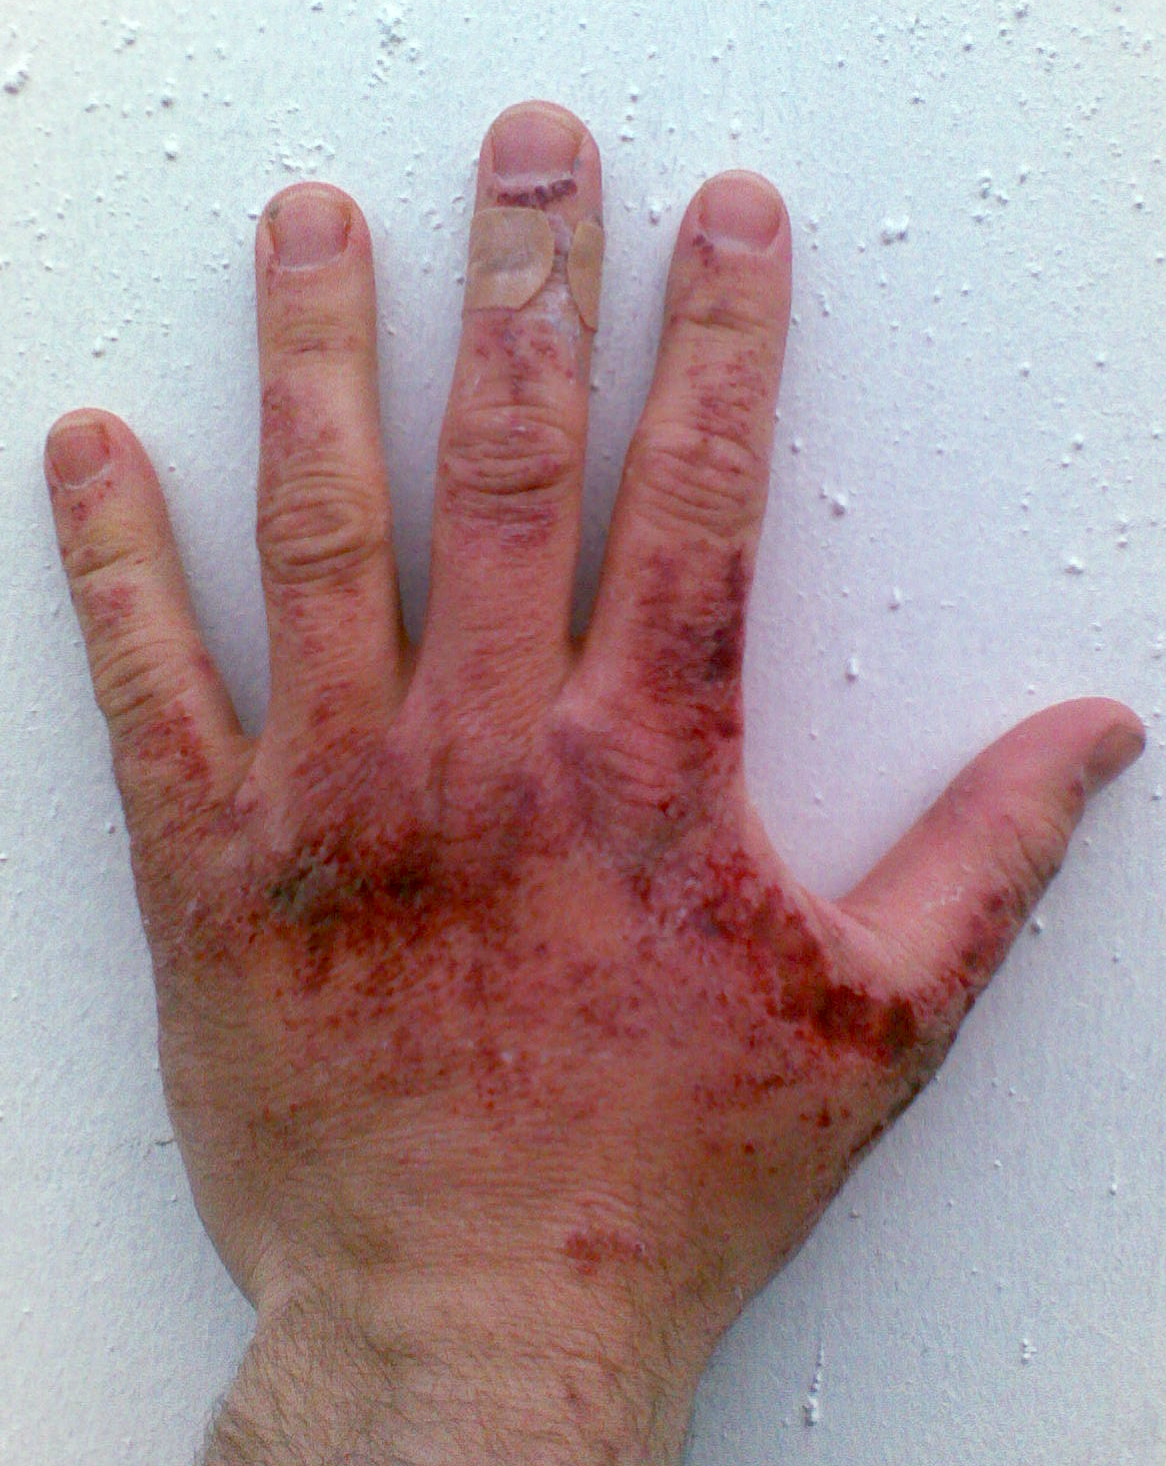 File:Sodium hydroxide burn.png - Wikipedia